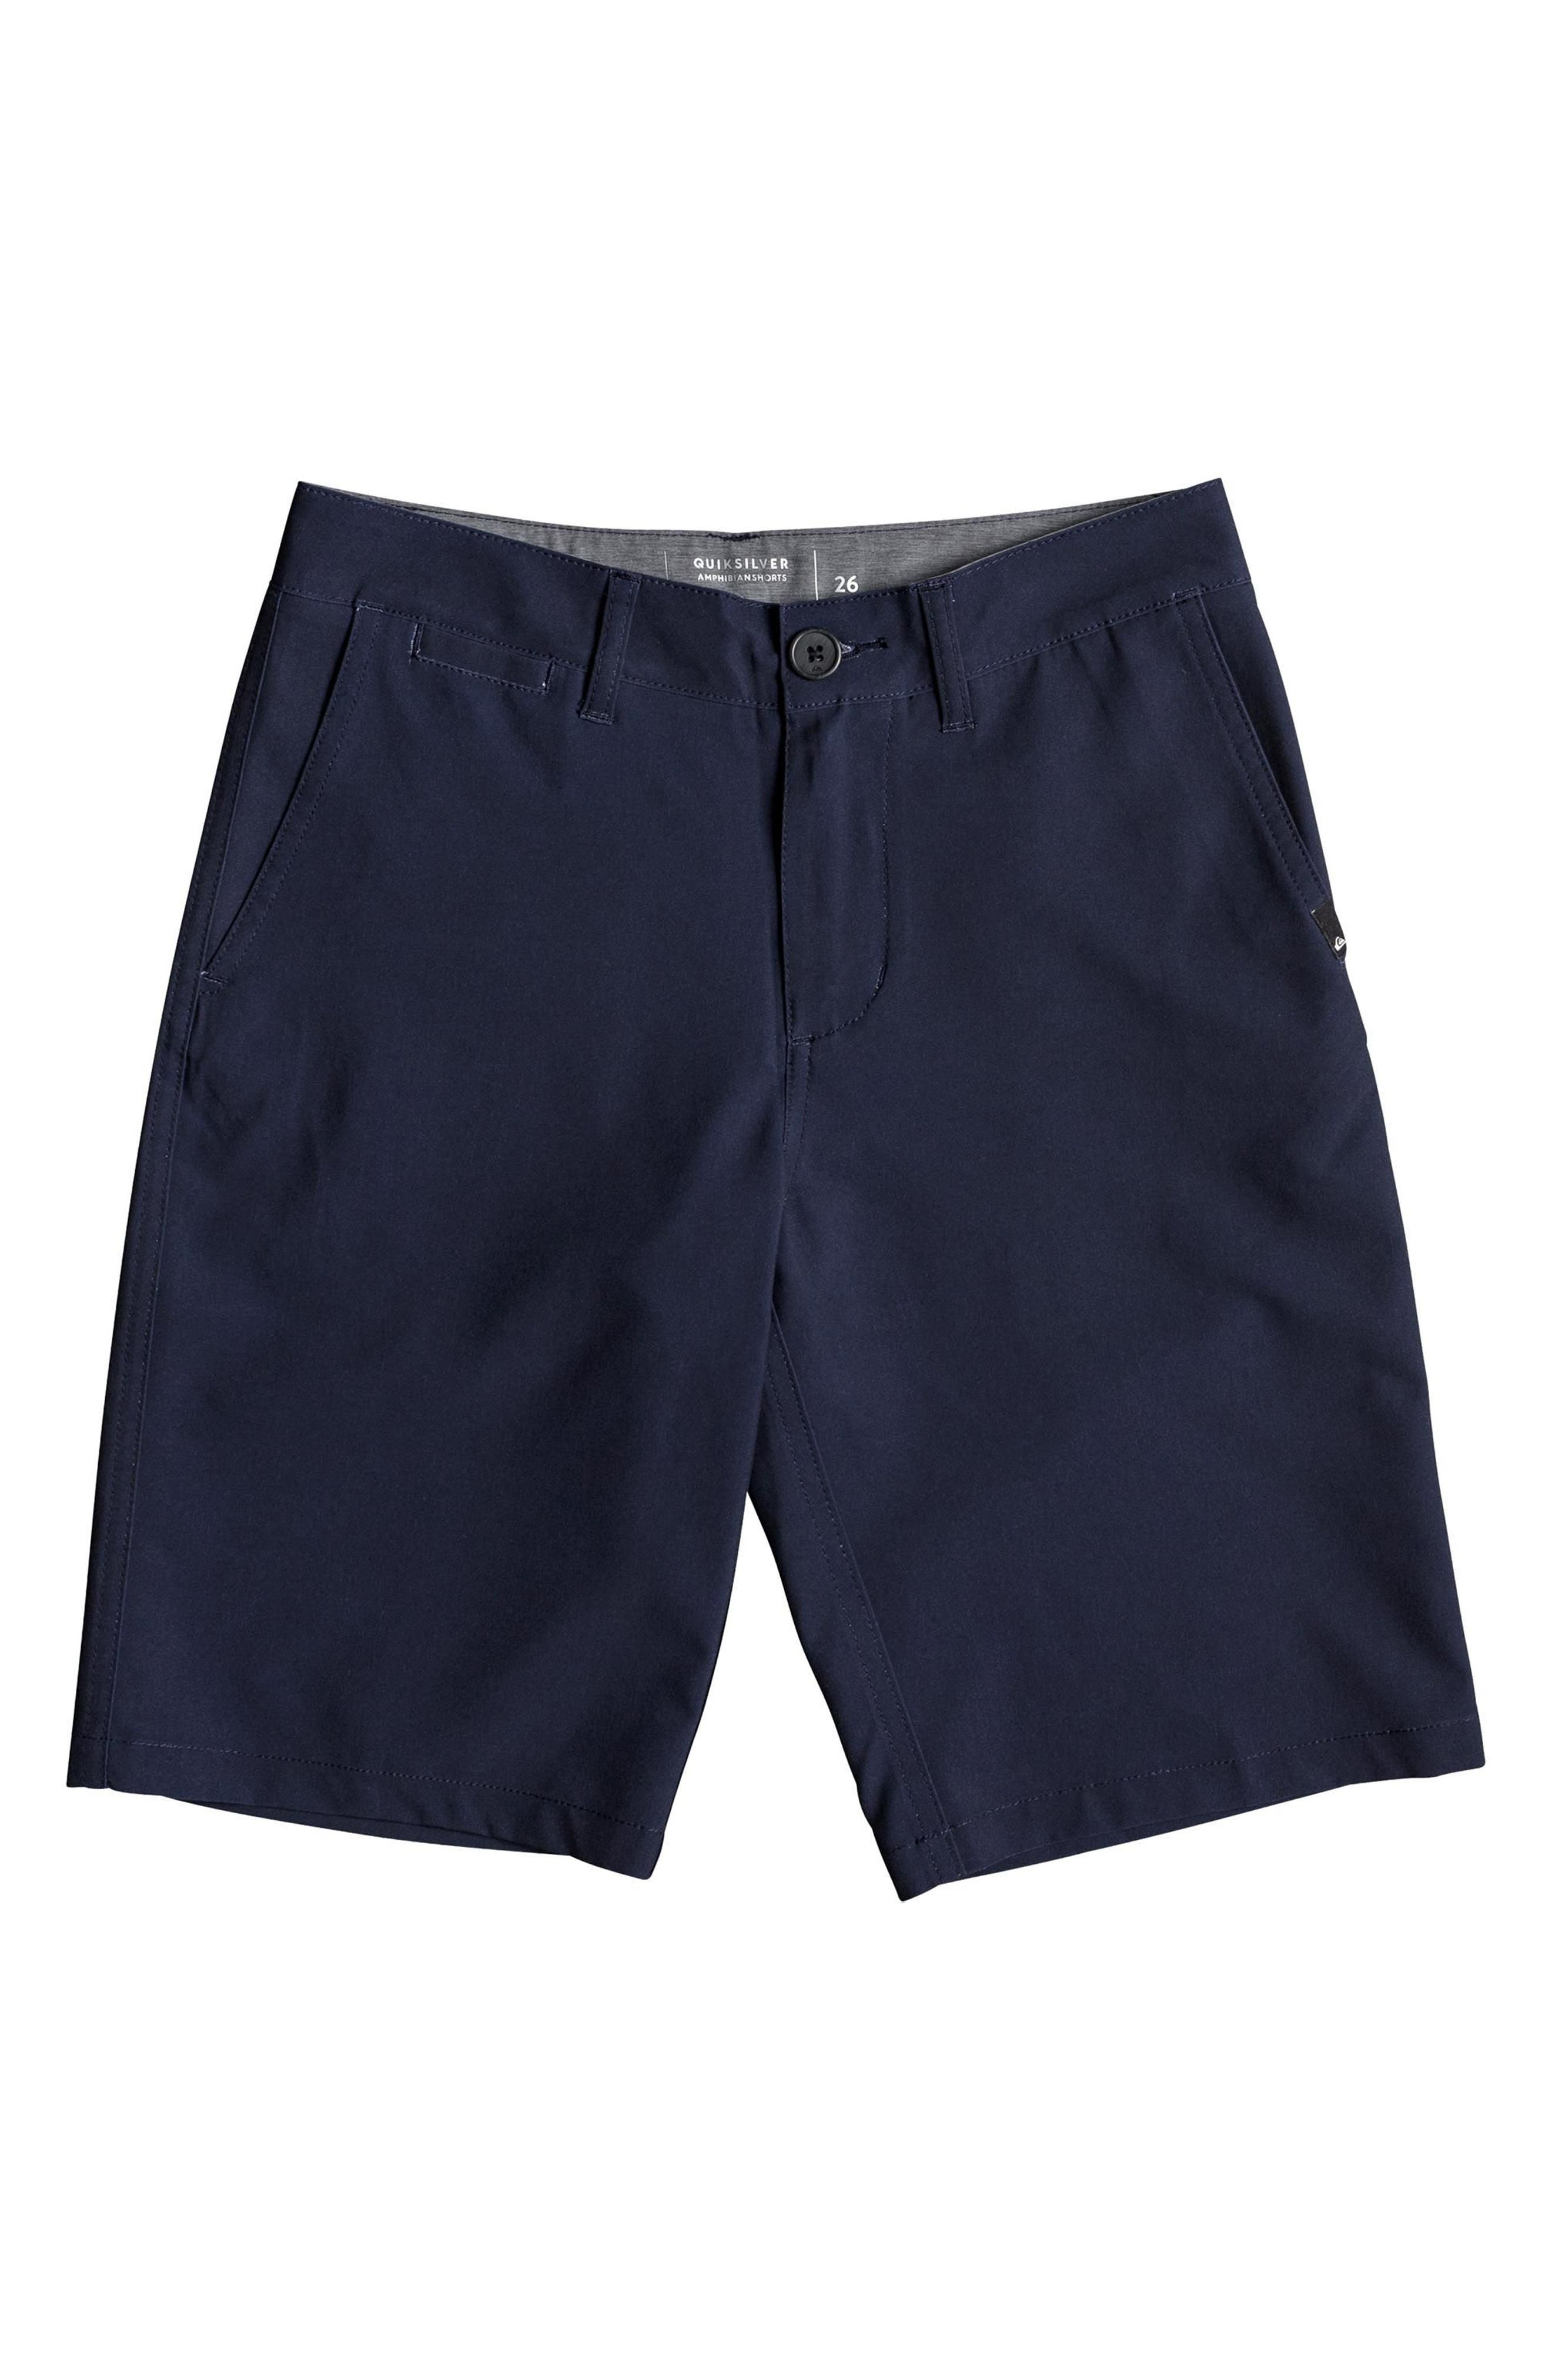 QUIKSILVER, Union Amphibian Hybrid Shorts, Main thumbnail 1, color, NAVY BLAZER